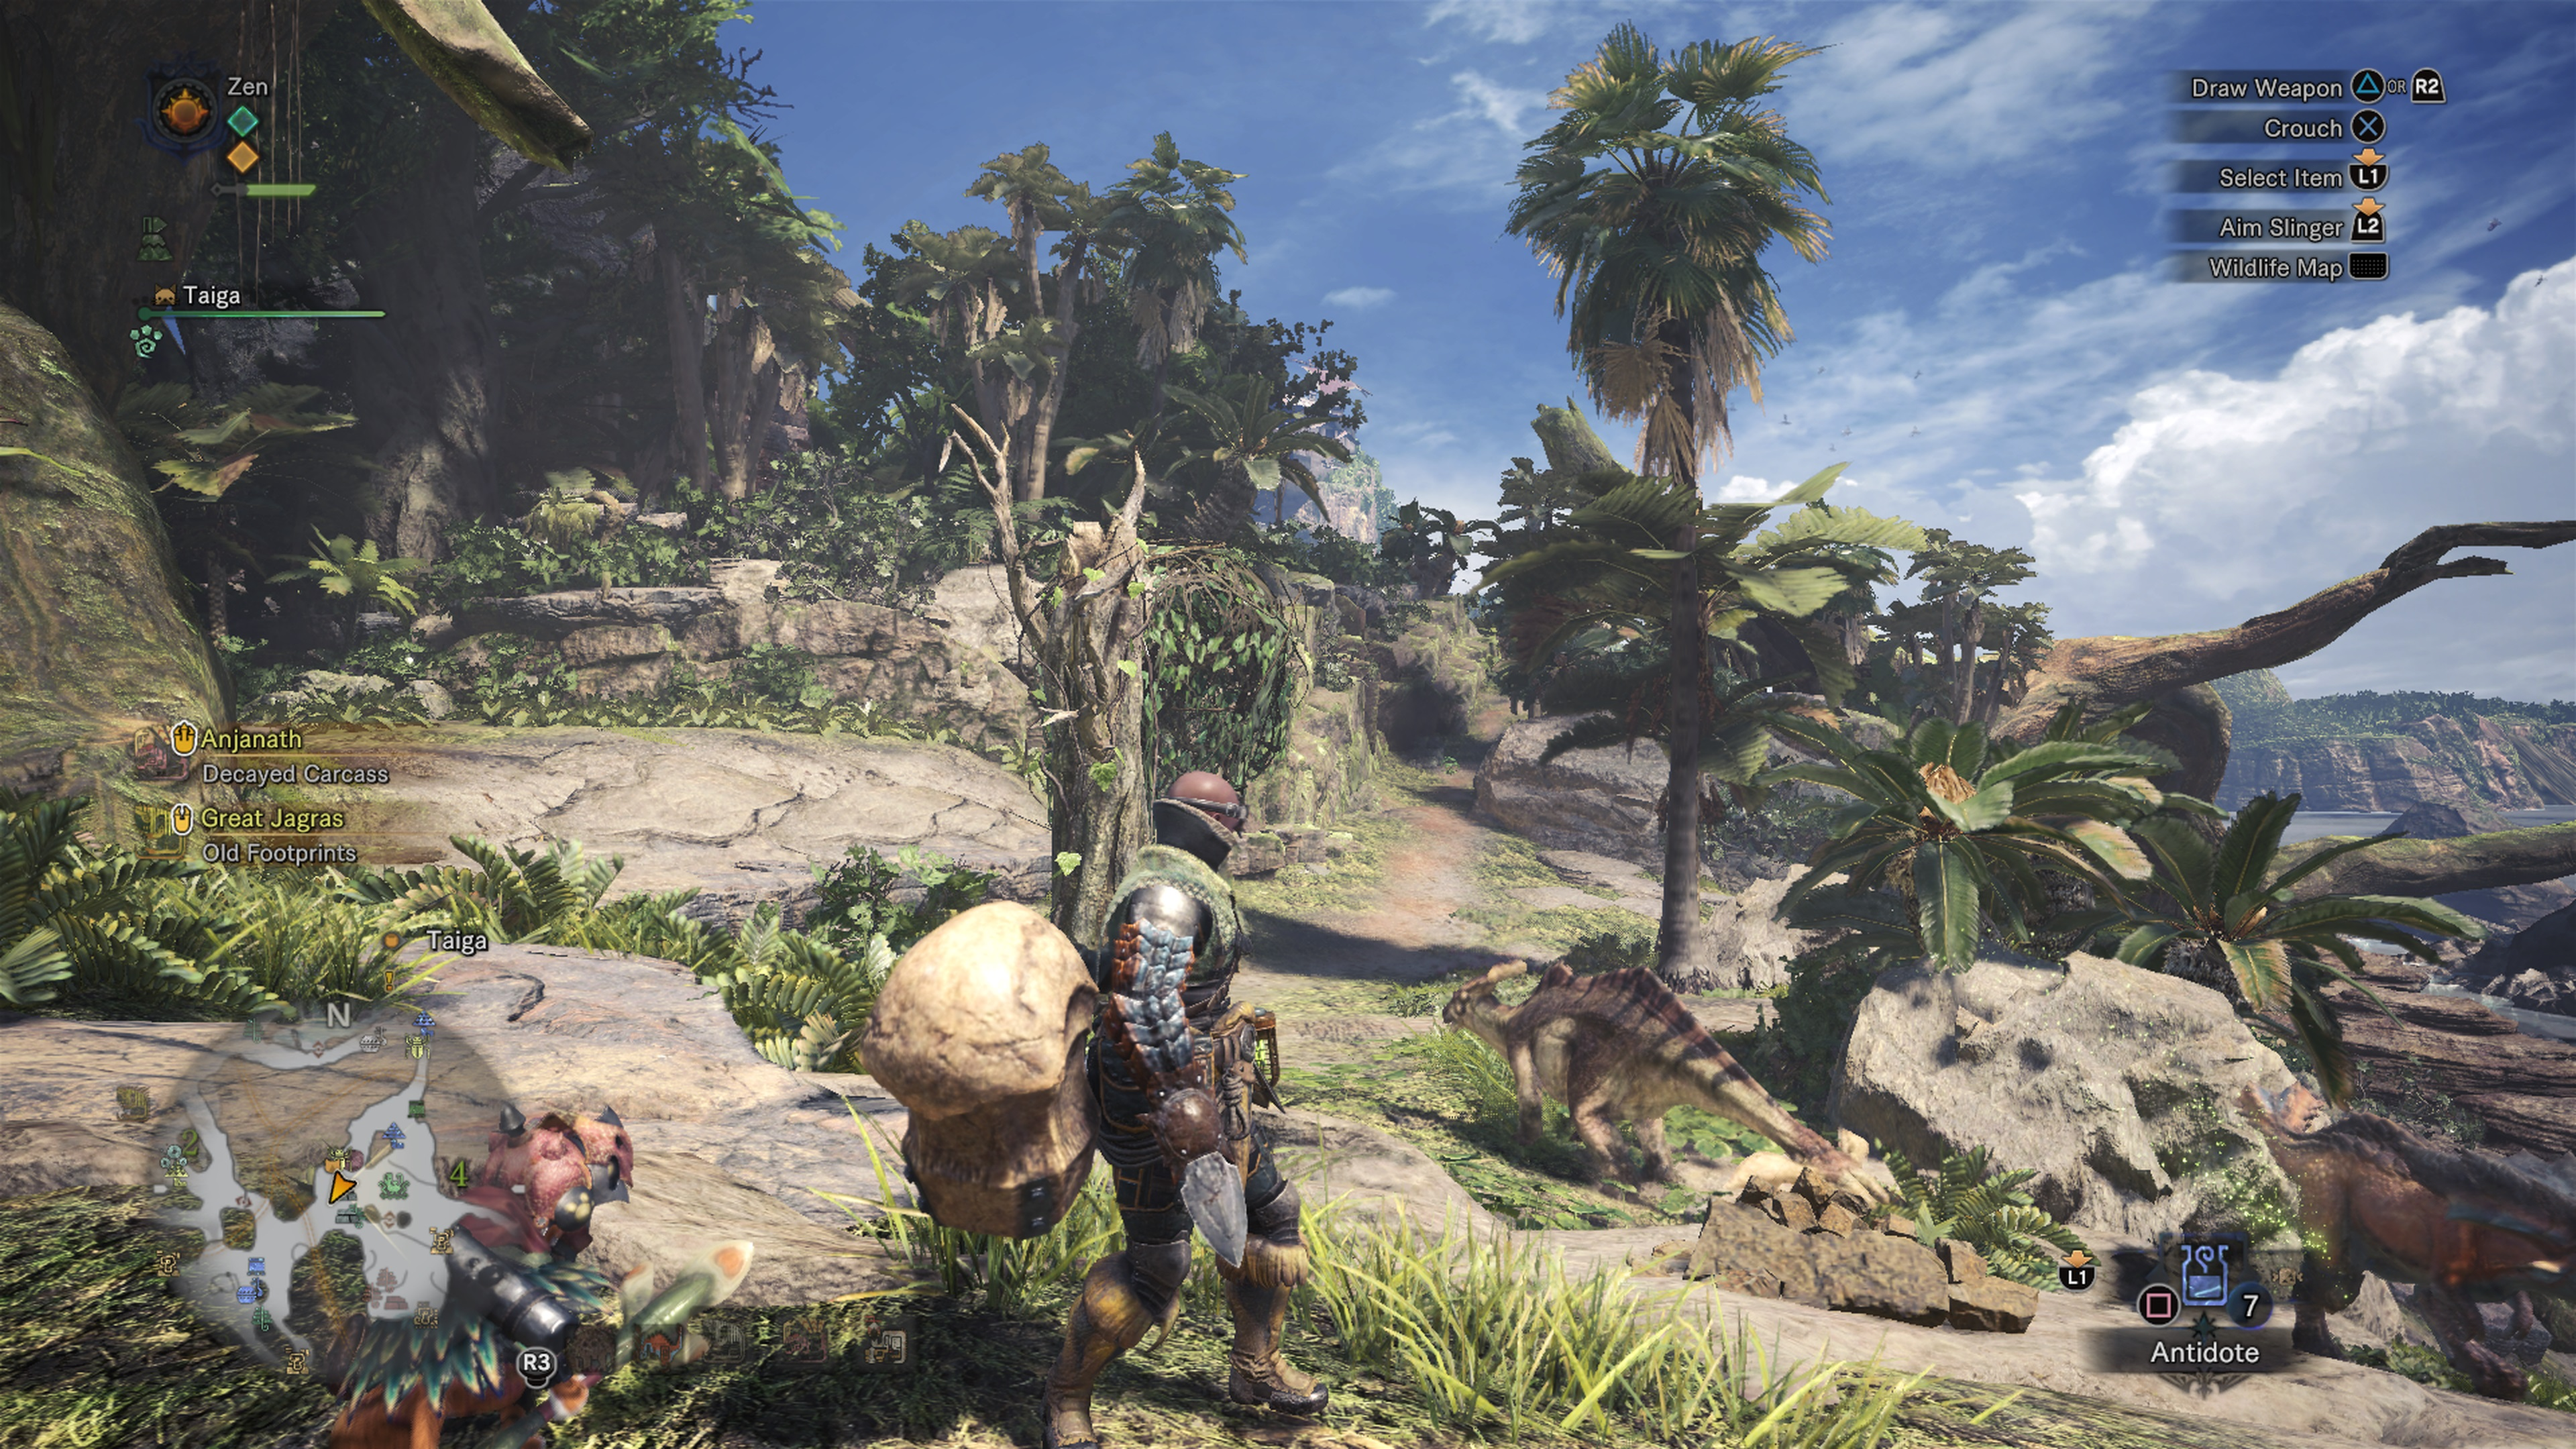 Monster Hunter: World PC vs PS4 Pro - How to Achieve 60 FPS